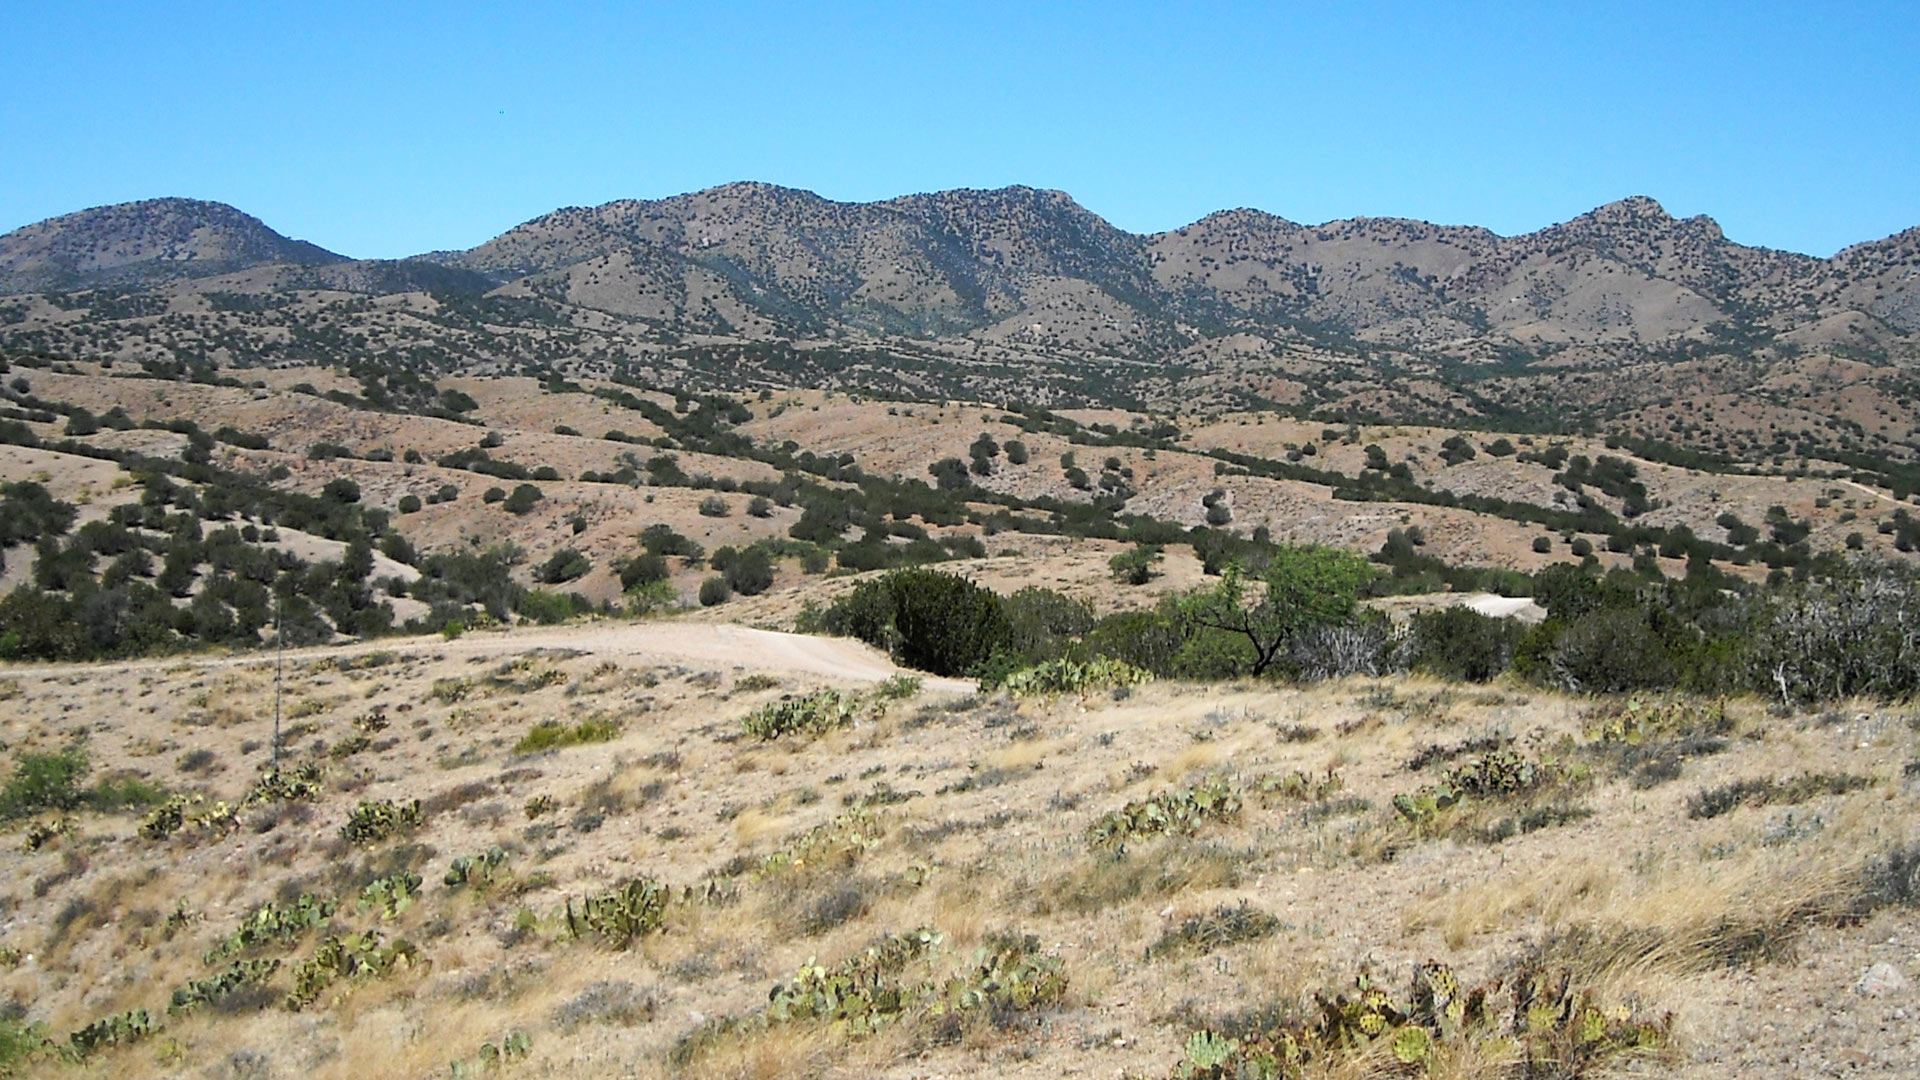 The Santa Rita Mountains in Southern Arizona is the proposed site of the future Rosemont Copper mining project.